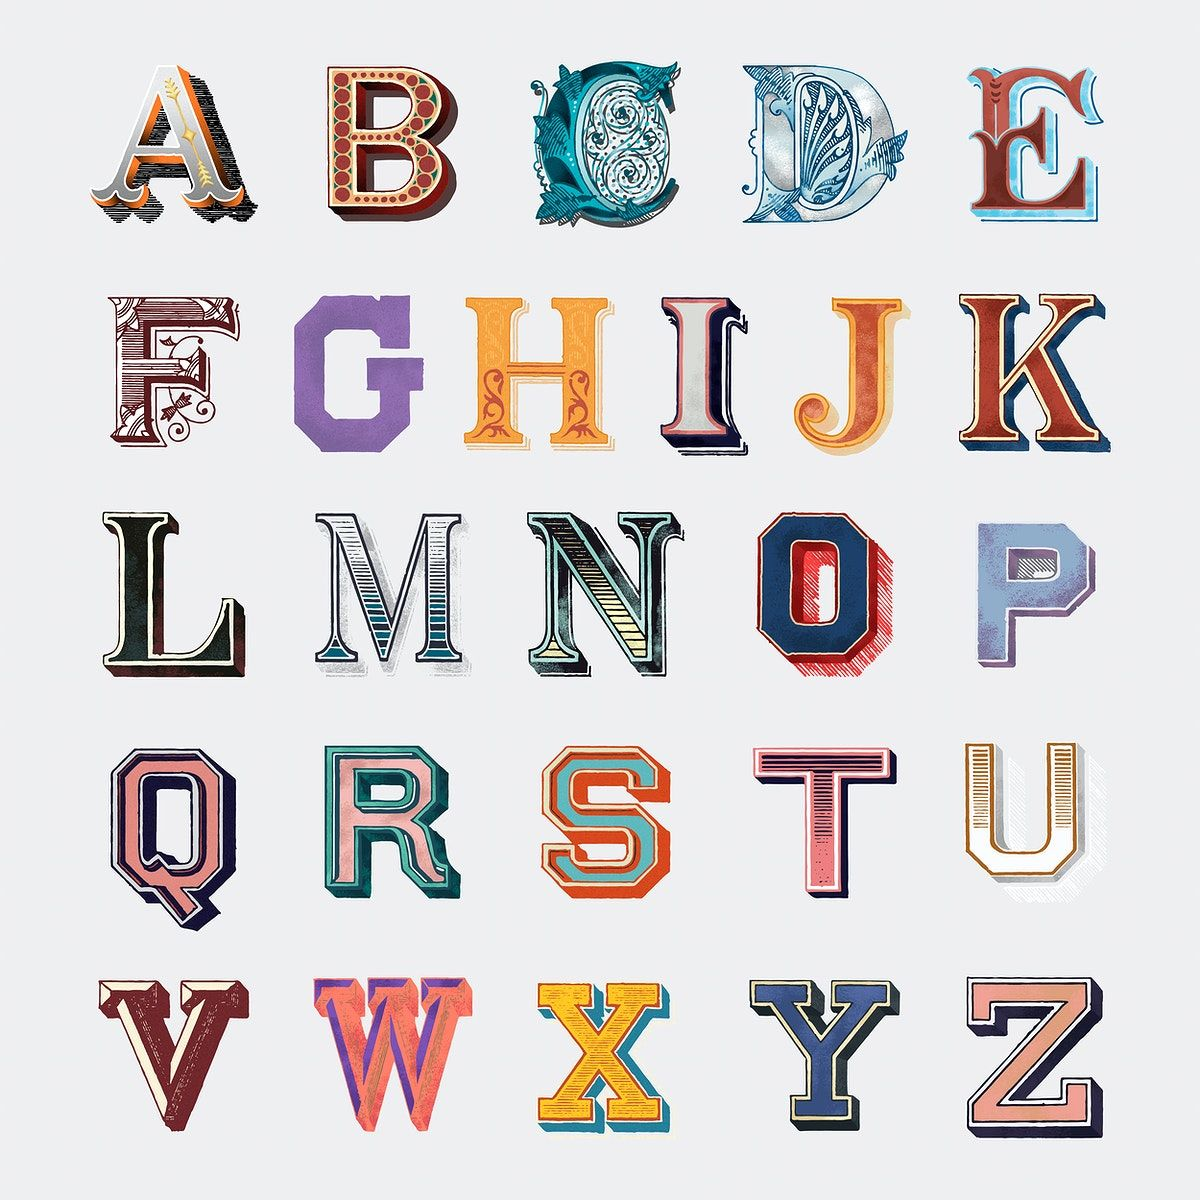 A Z Alphabet Vector Vintage Fonts Bold Typography Free Image By Rawpixel Com In 2020 Bold Typography Vector Free Vintage Fonts